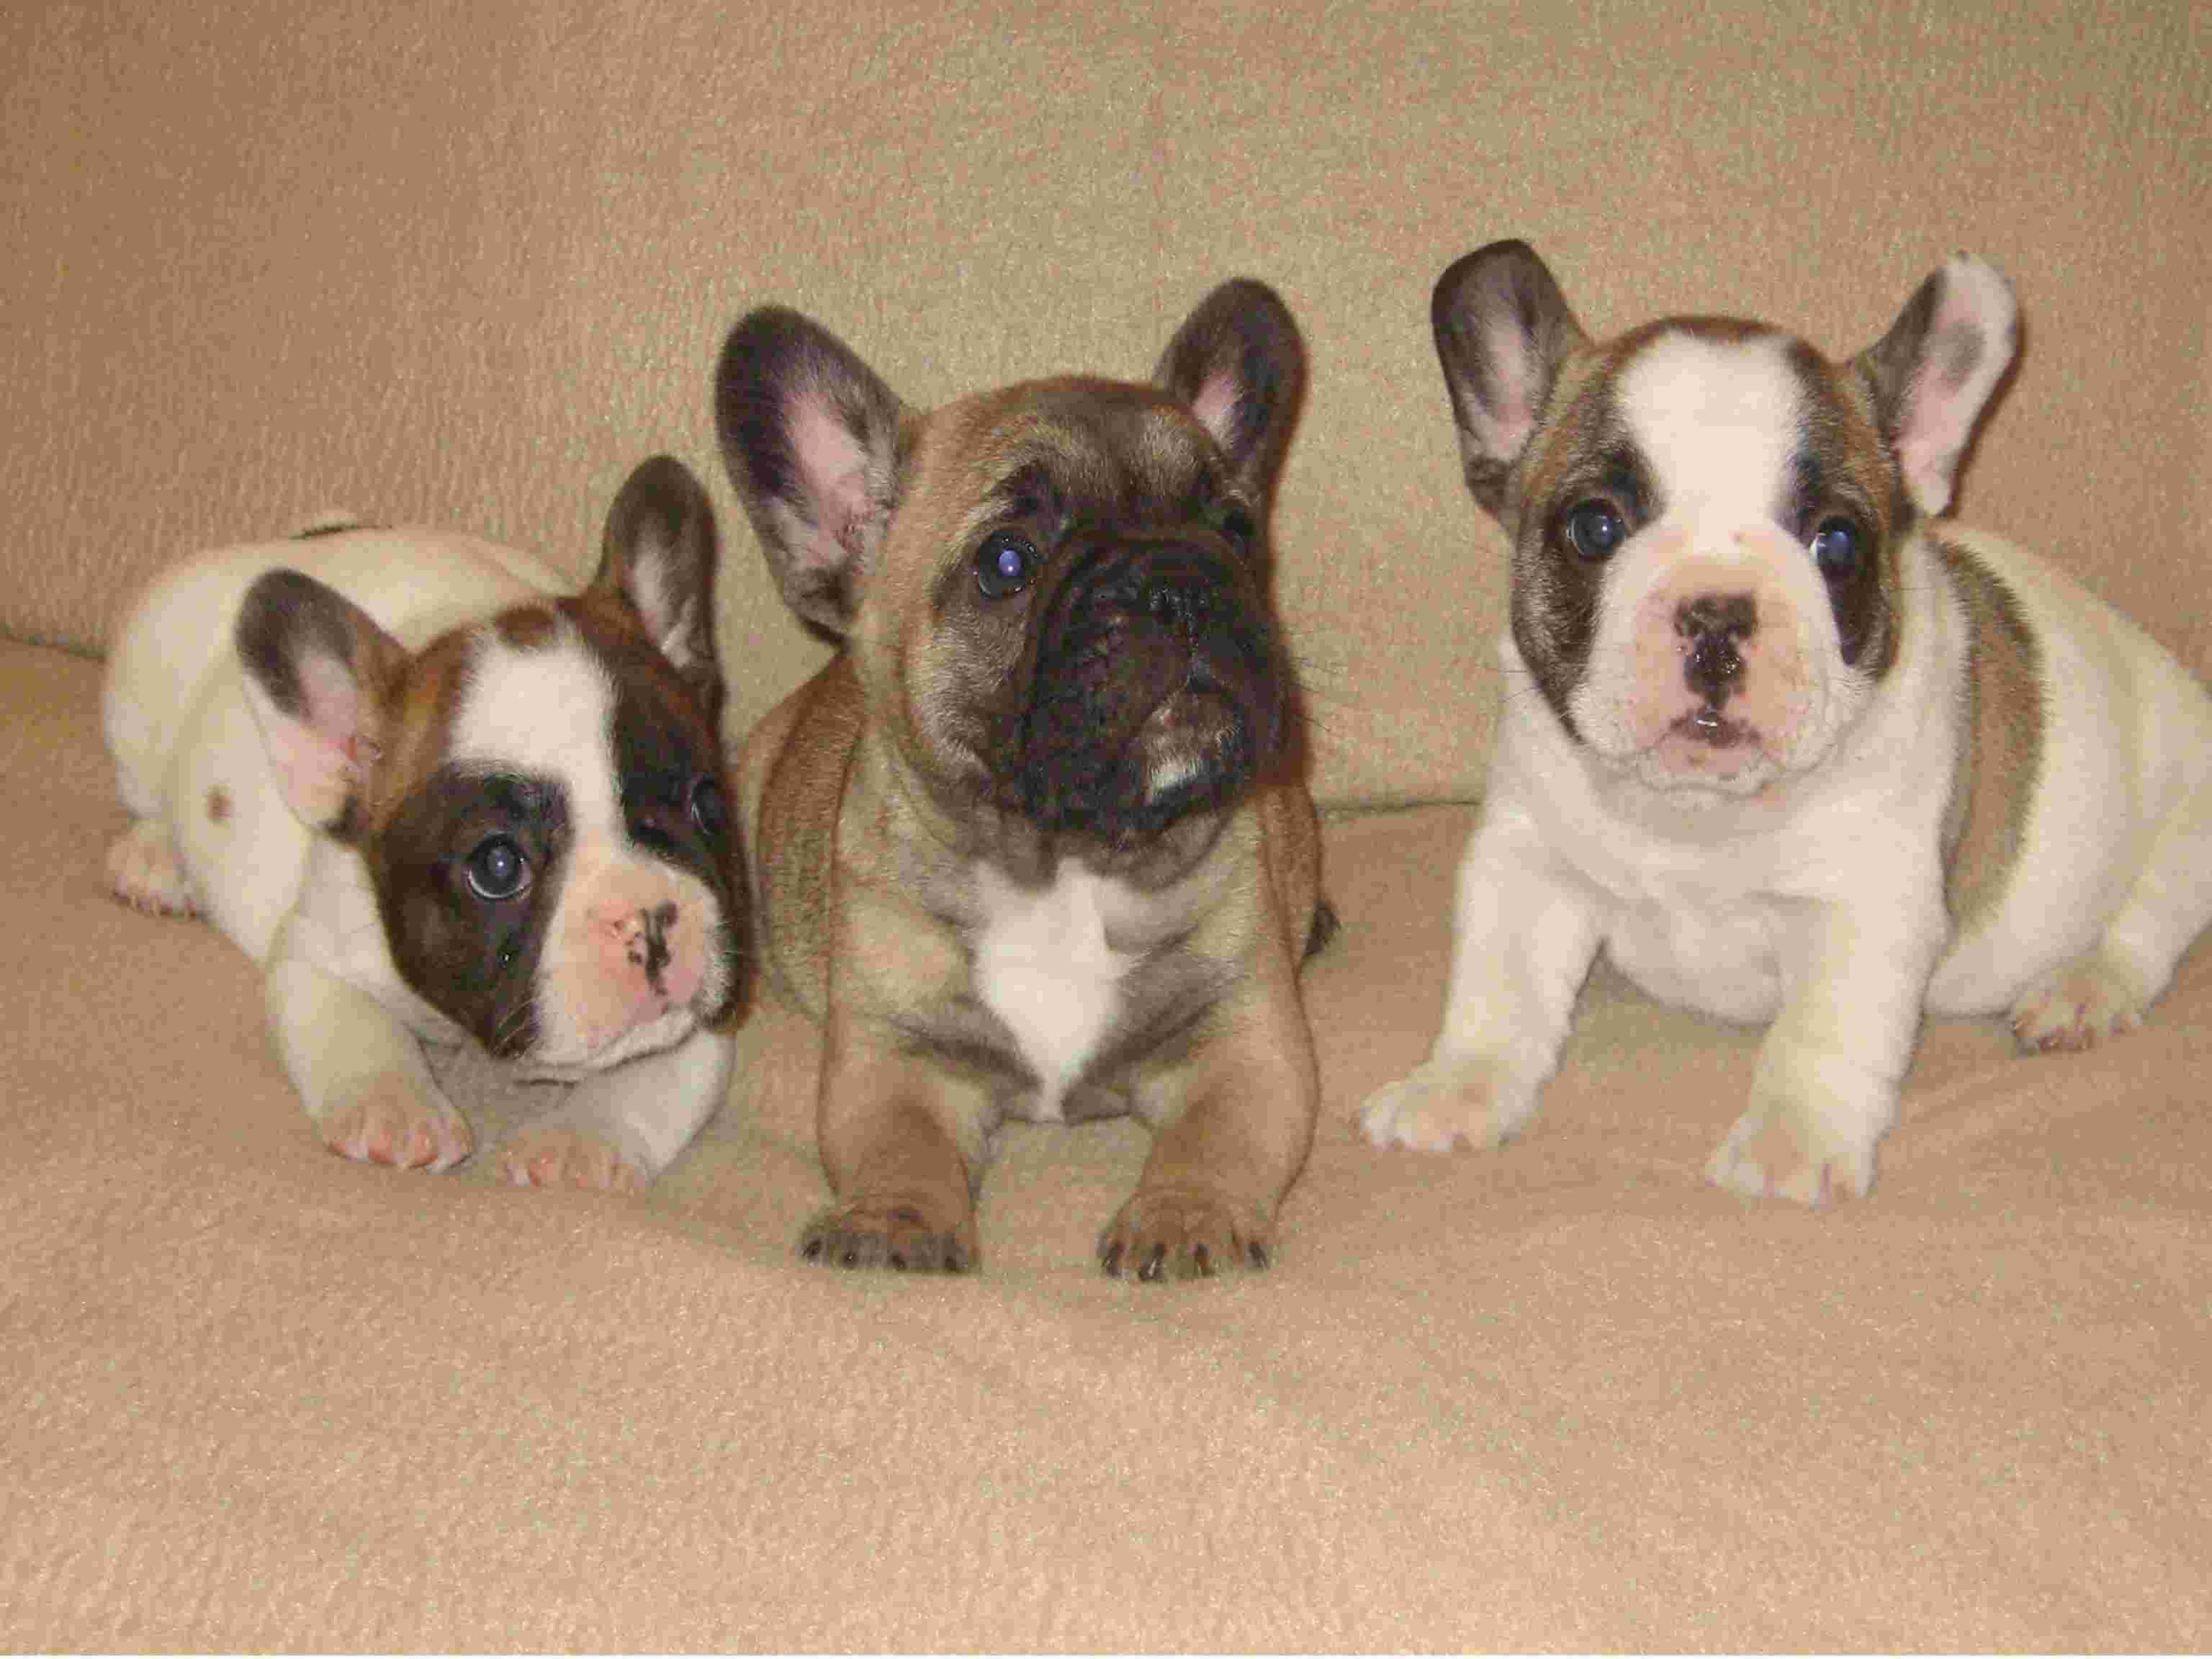 French Bulldog Puppies For Sale Puppy Breeder Dogs Wake Forest Nc